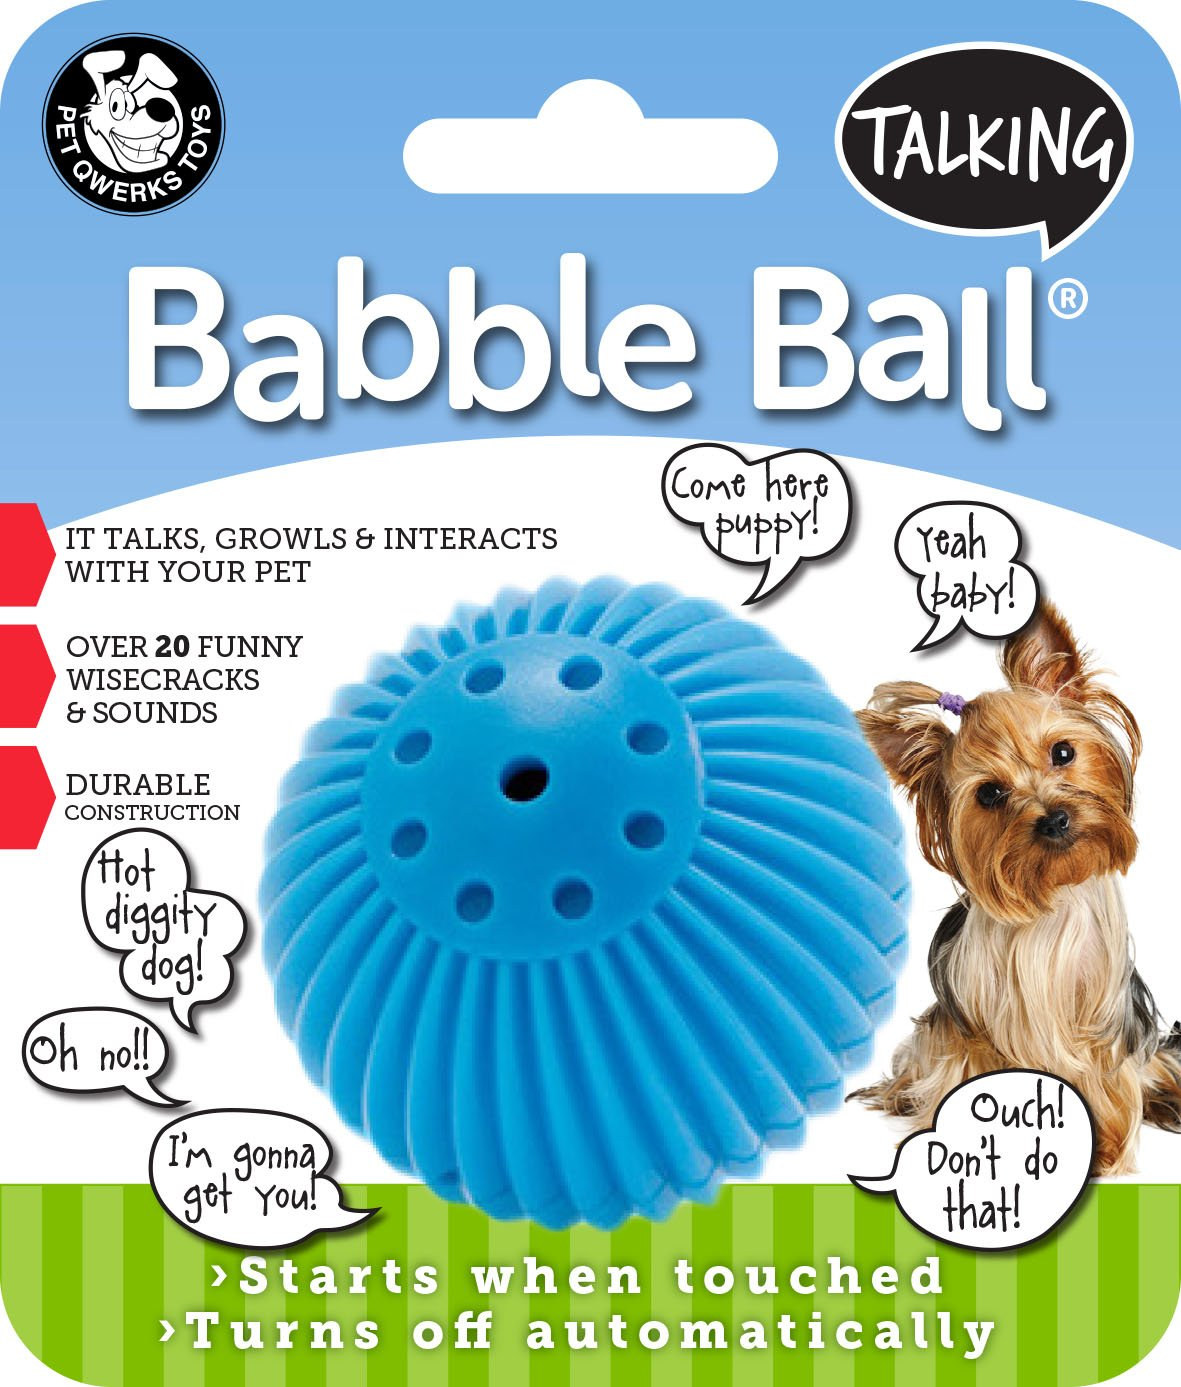 Pet Qwerks Talking Babble Ball Interactive Dog Toy, Wisecracks and Makes Funny Sounds When Touched